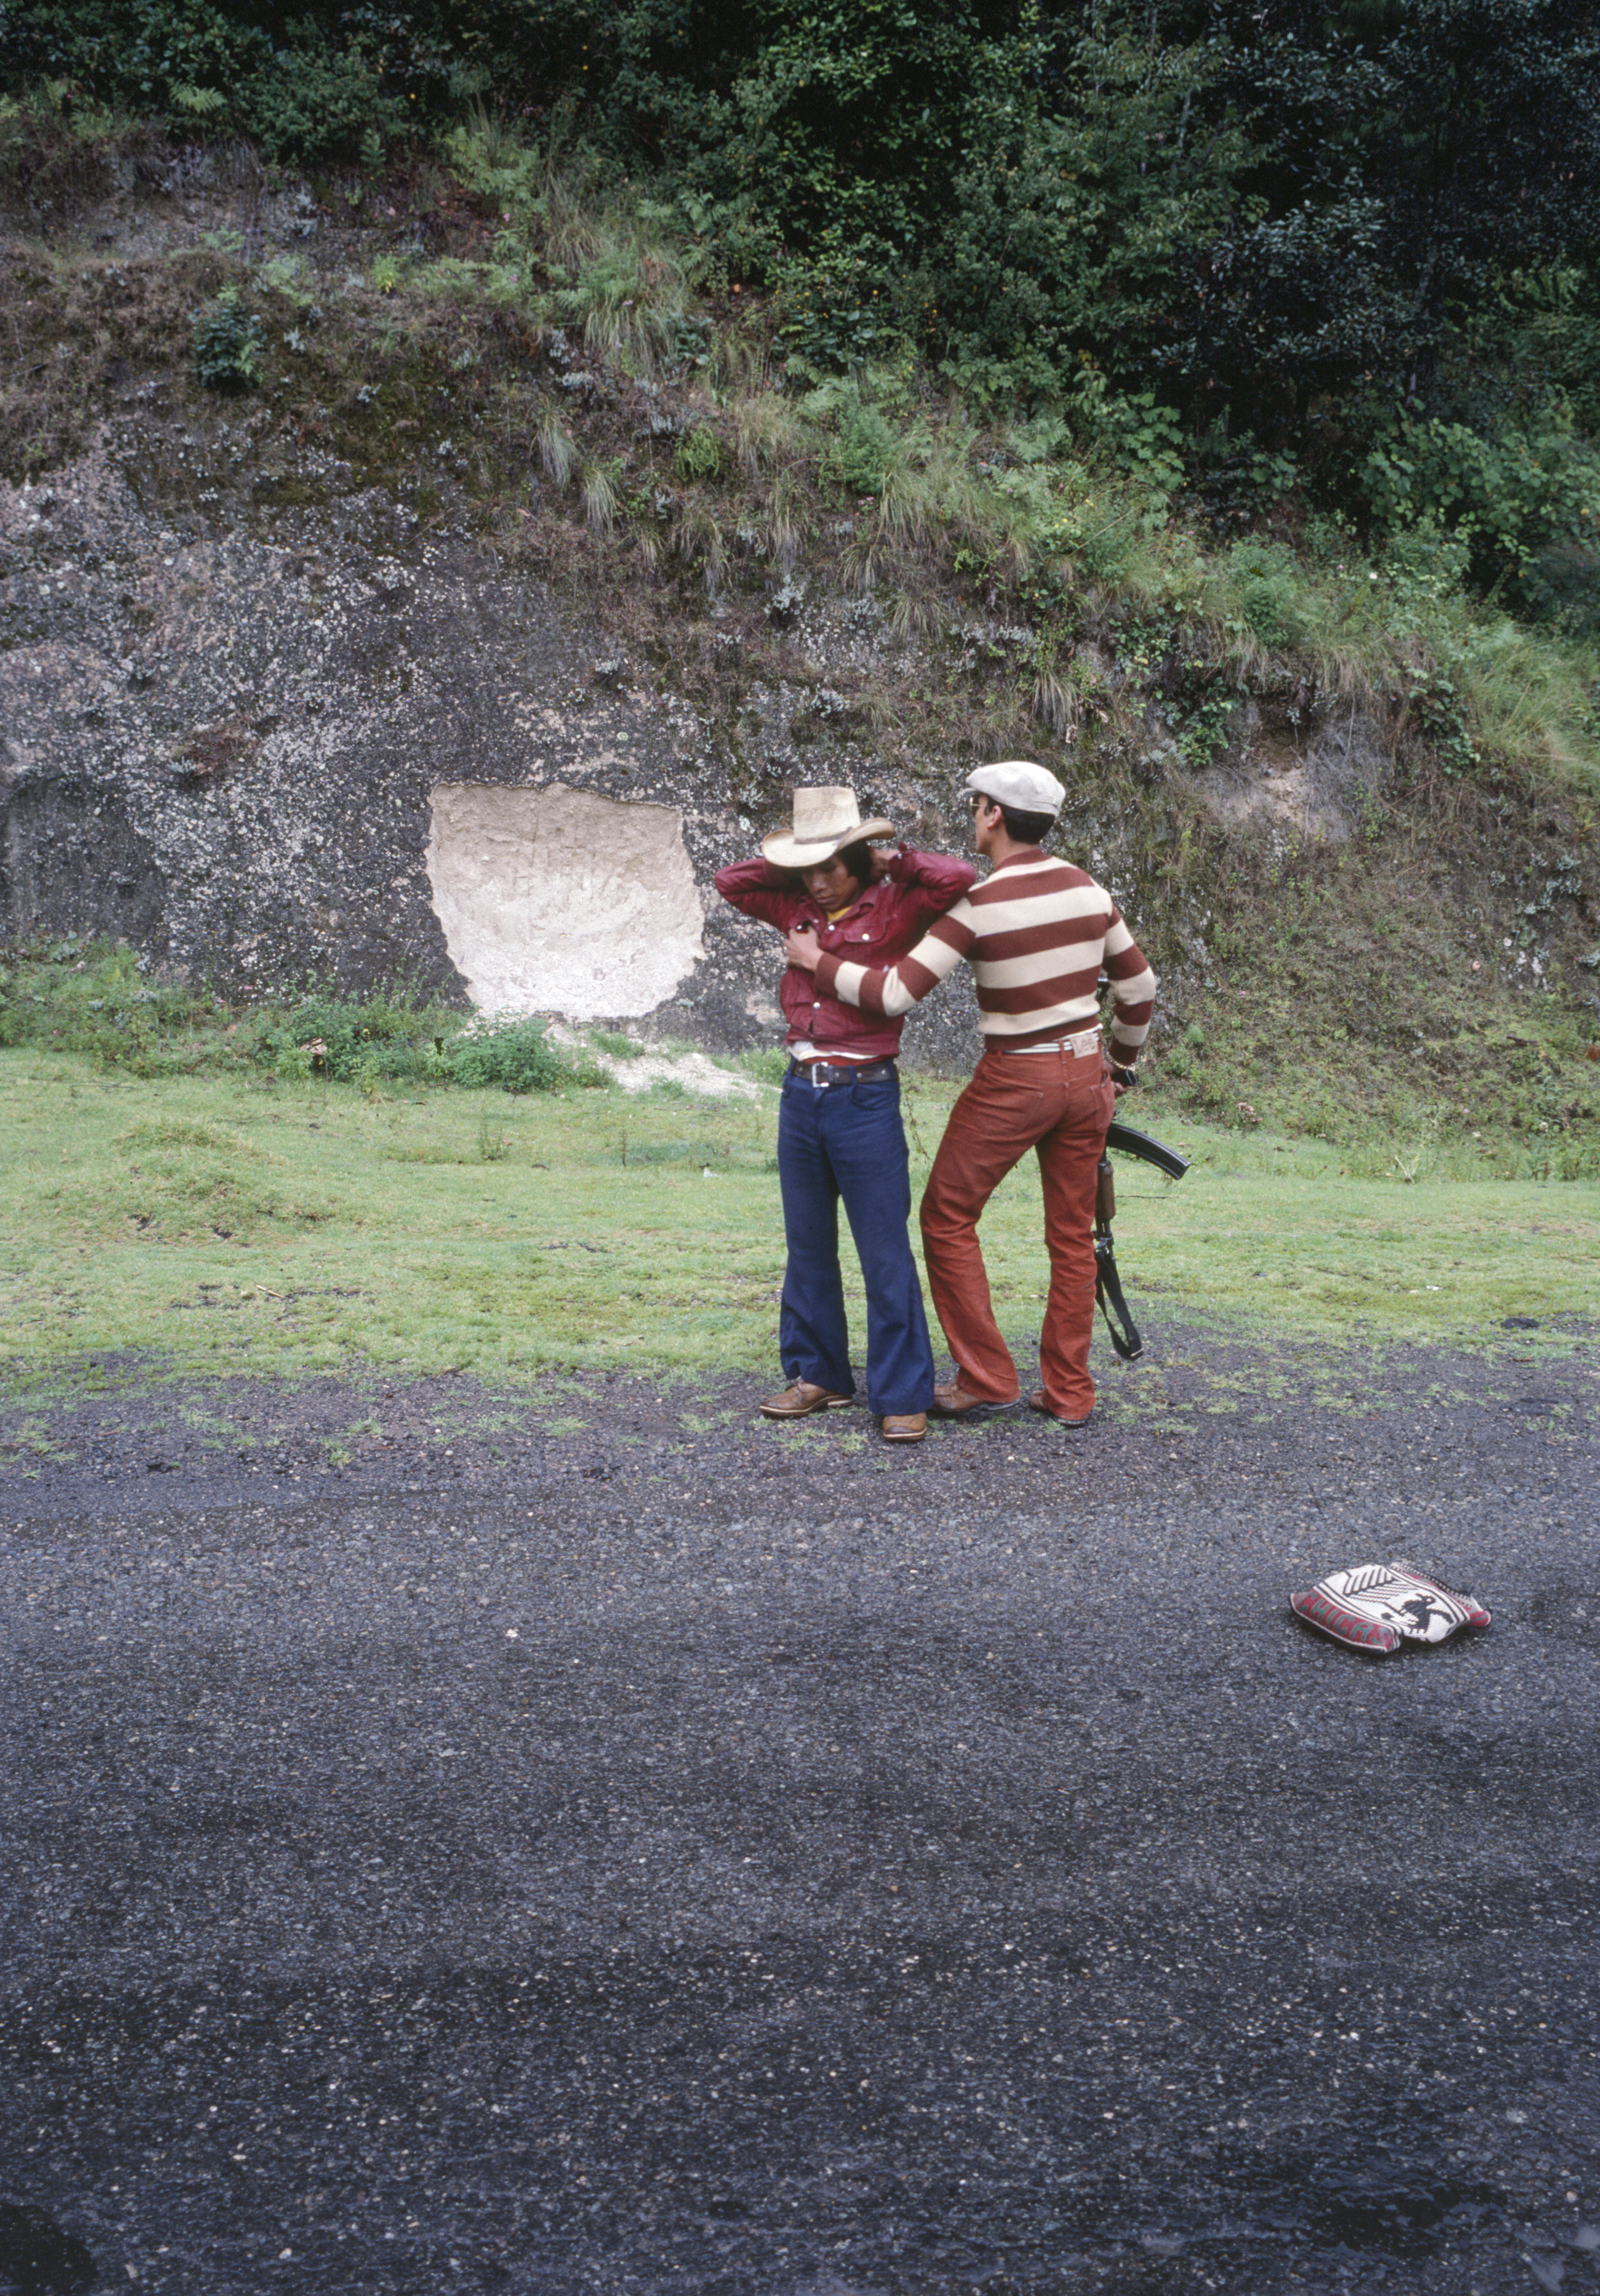 A plainclothes security officer, right, searches a civilian in rural Huehuetenango, Guatemala, September 1, 1982. Civil Defense Patrols effectively institutionalized military power at the local level by infiltrating and dissolving community loyalties and reorienting them to serve counterinsurgency efforts. They served a critical role in the systemic violence, inequality, and militarization of the domestic armed conflict.